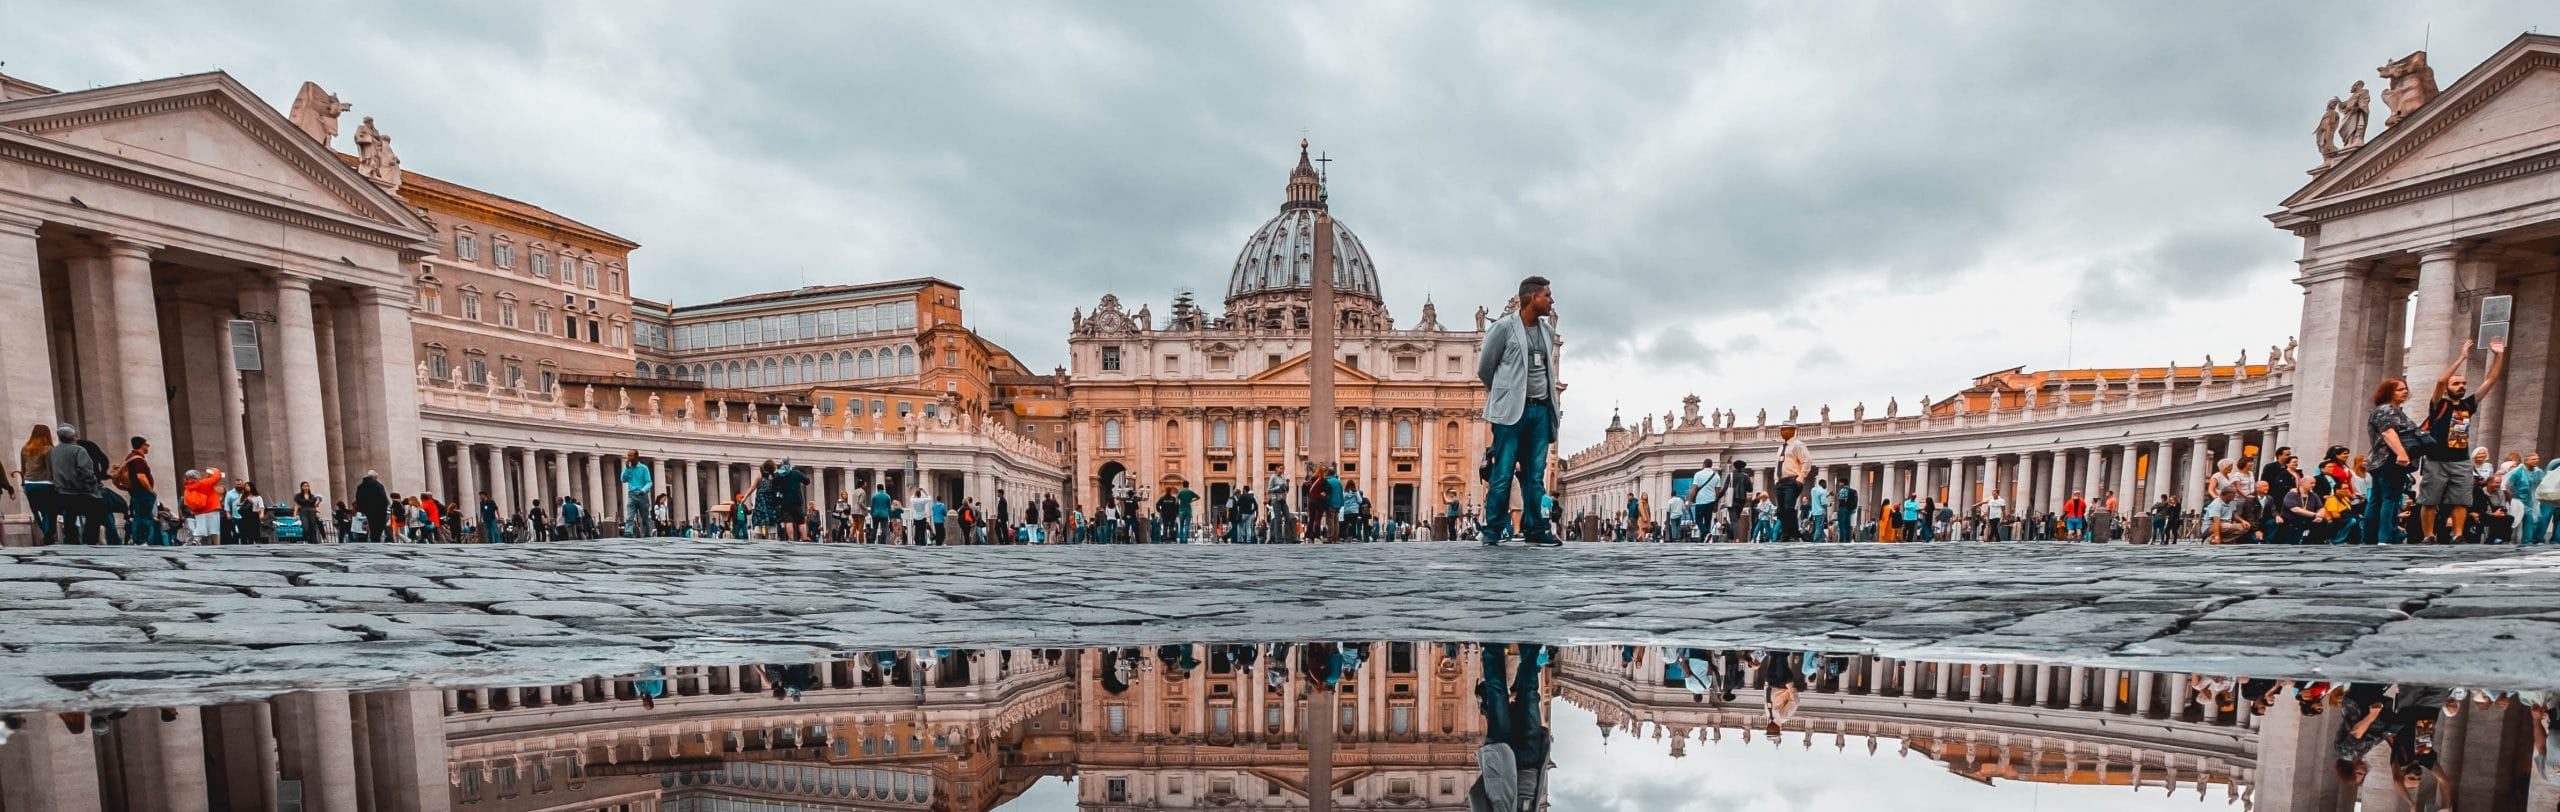 Pilgrims stand outside St. Peter's Basilica, Vatican City